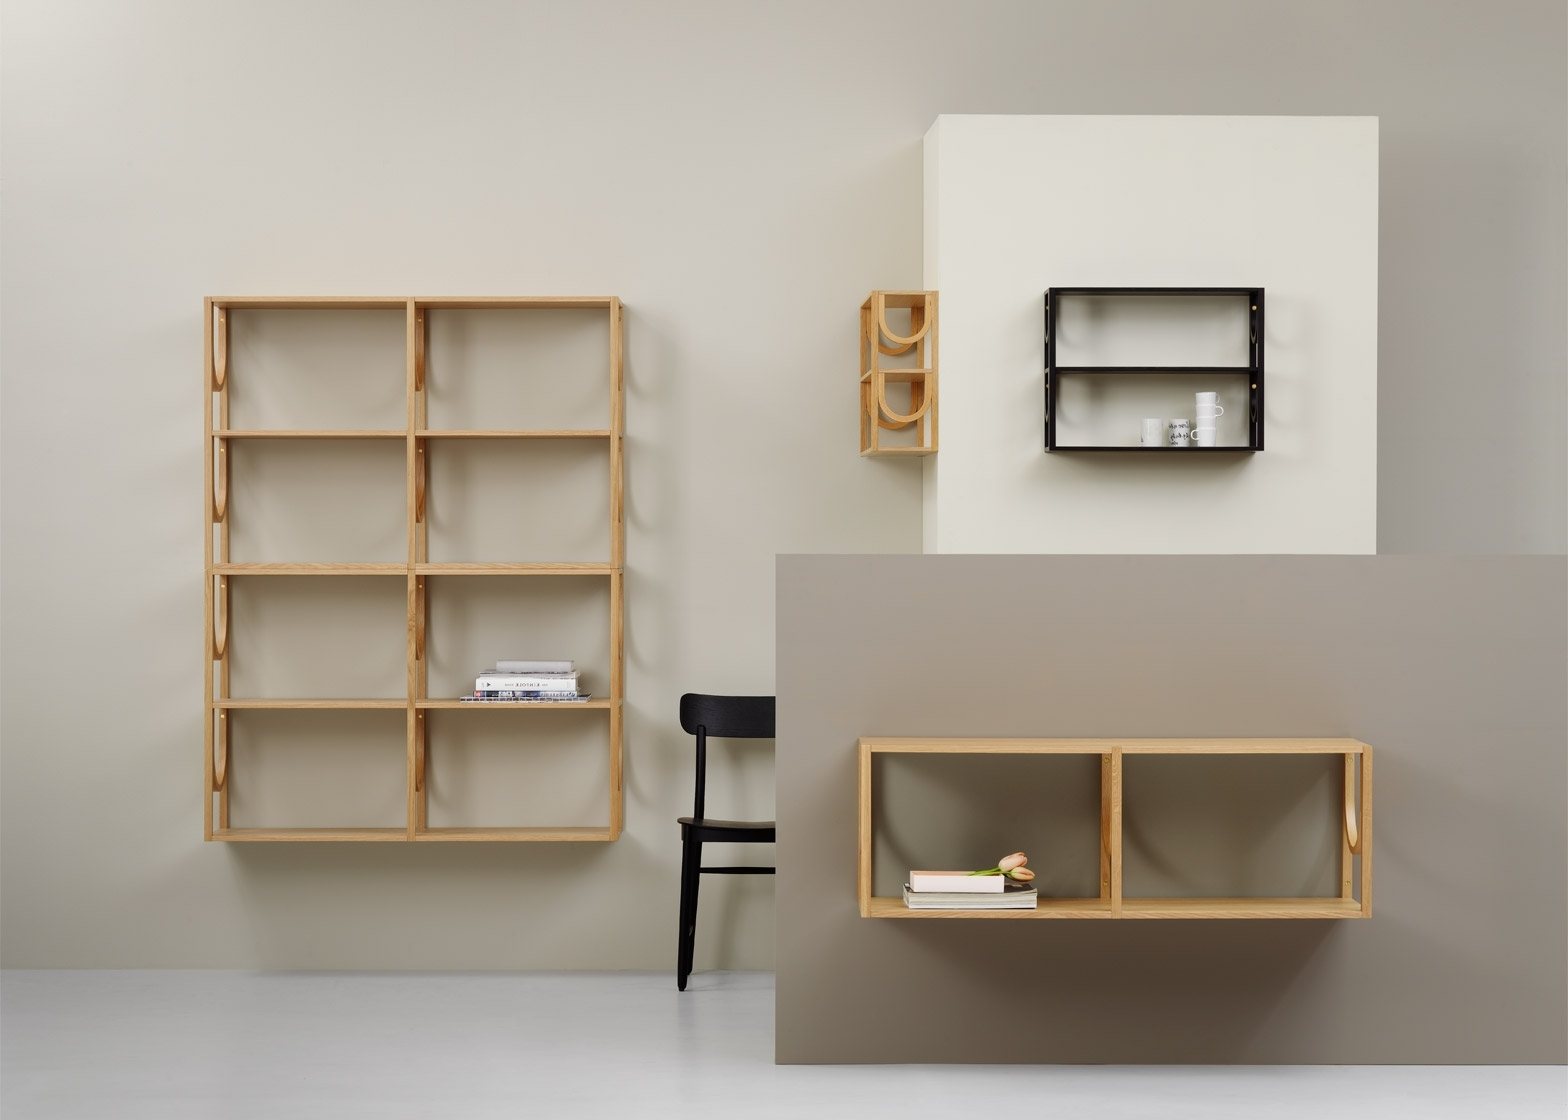 Trendy Note Design Designs Modular Arch Bookshelf System For Fogia In Modular Bookcases (View 12 of 15)